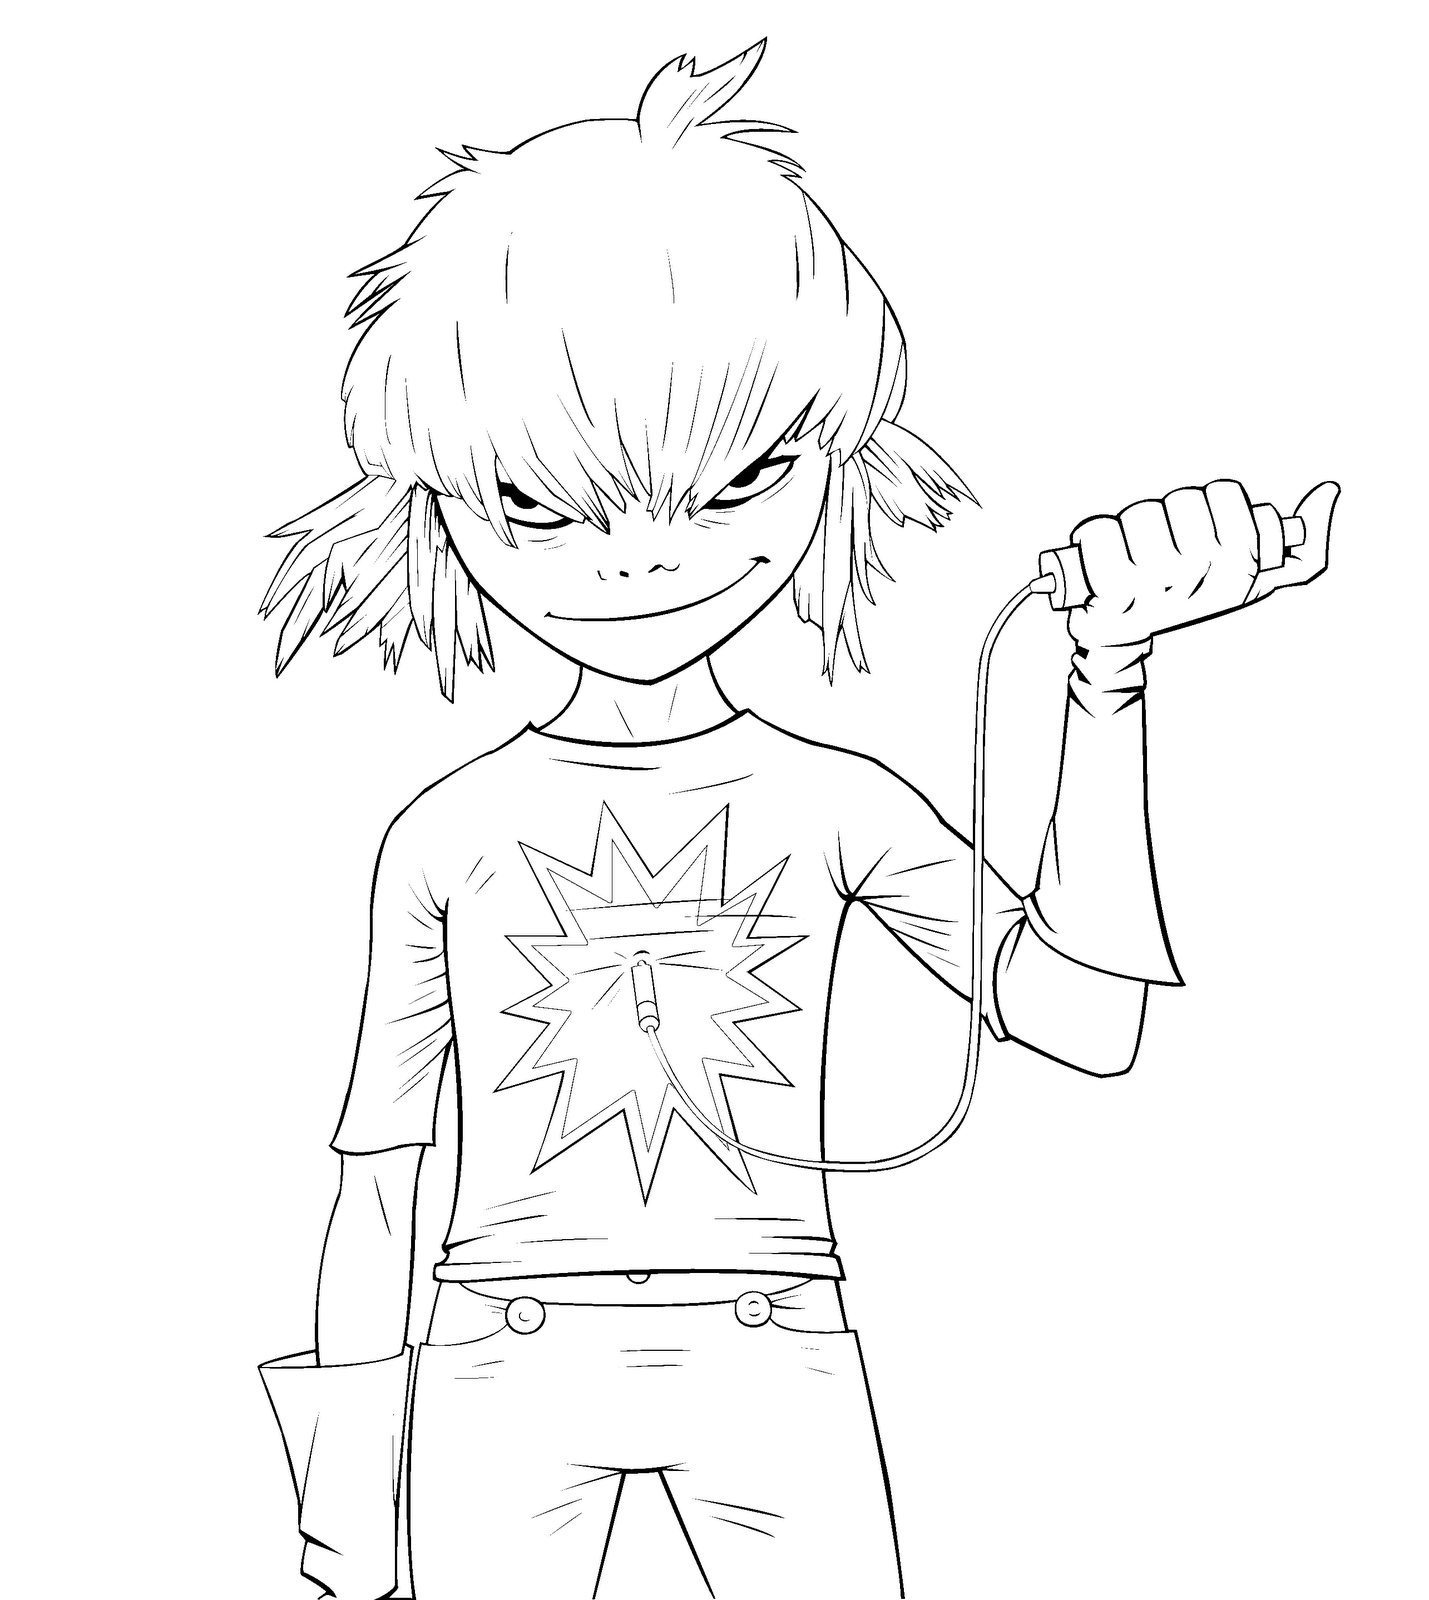 Gorillaz Coloring Pages - Coloring Pages Kids 2019 | 1600x1429